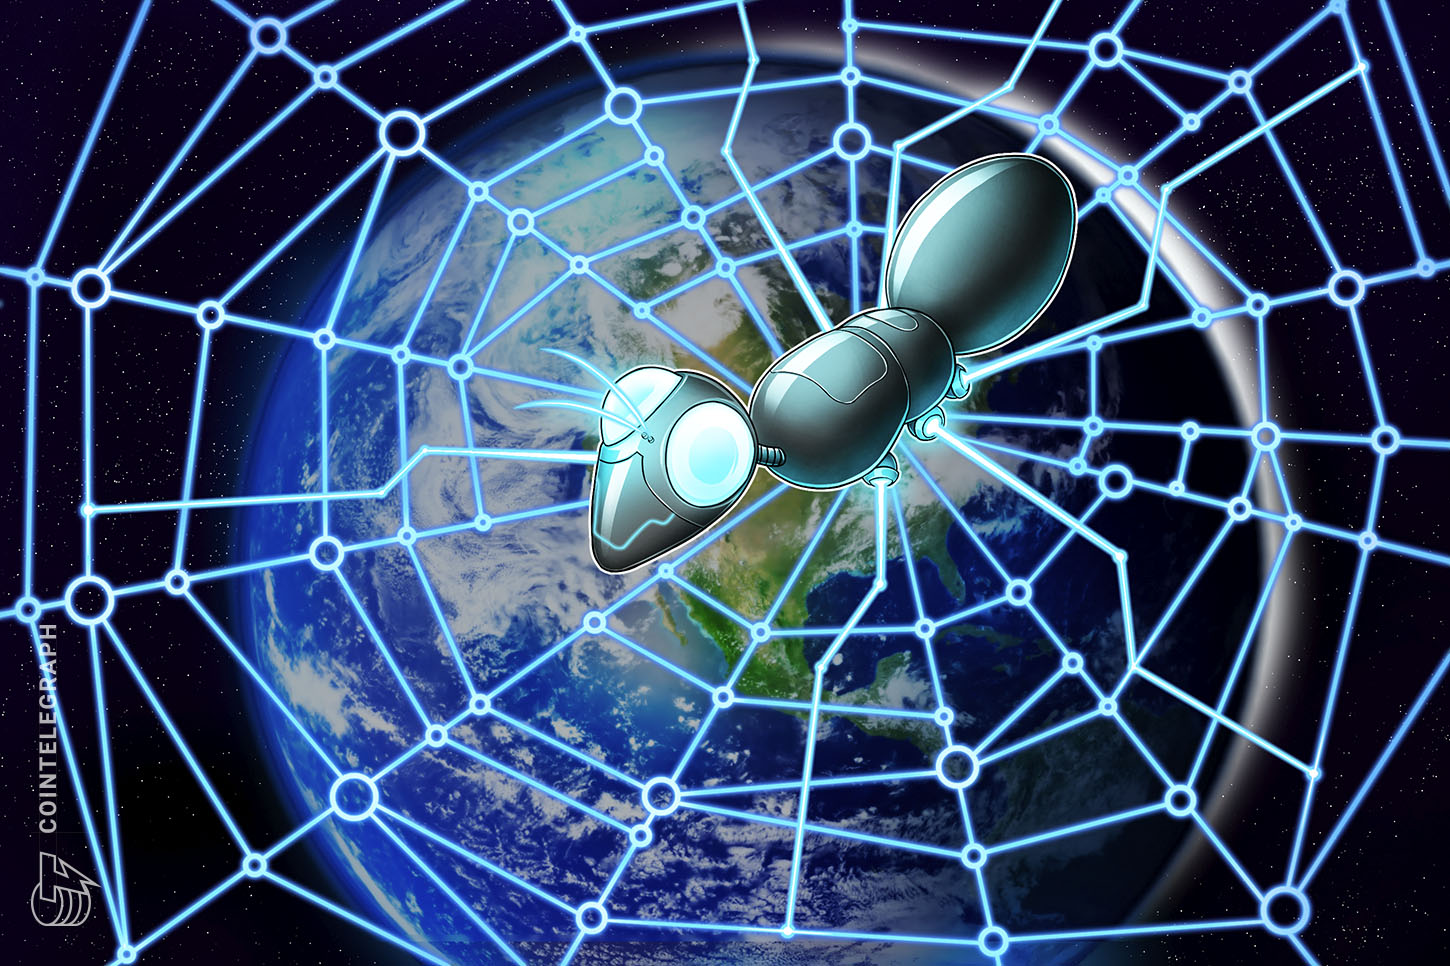 Web 3.0 would enable new possibilities and opportunities